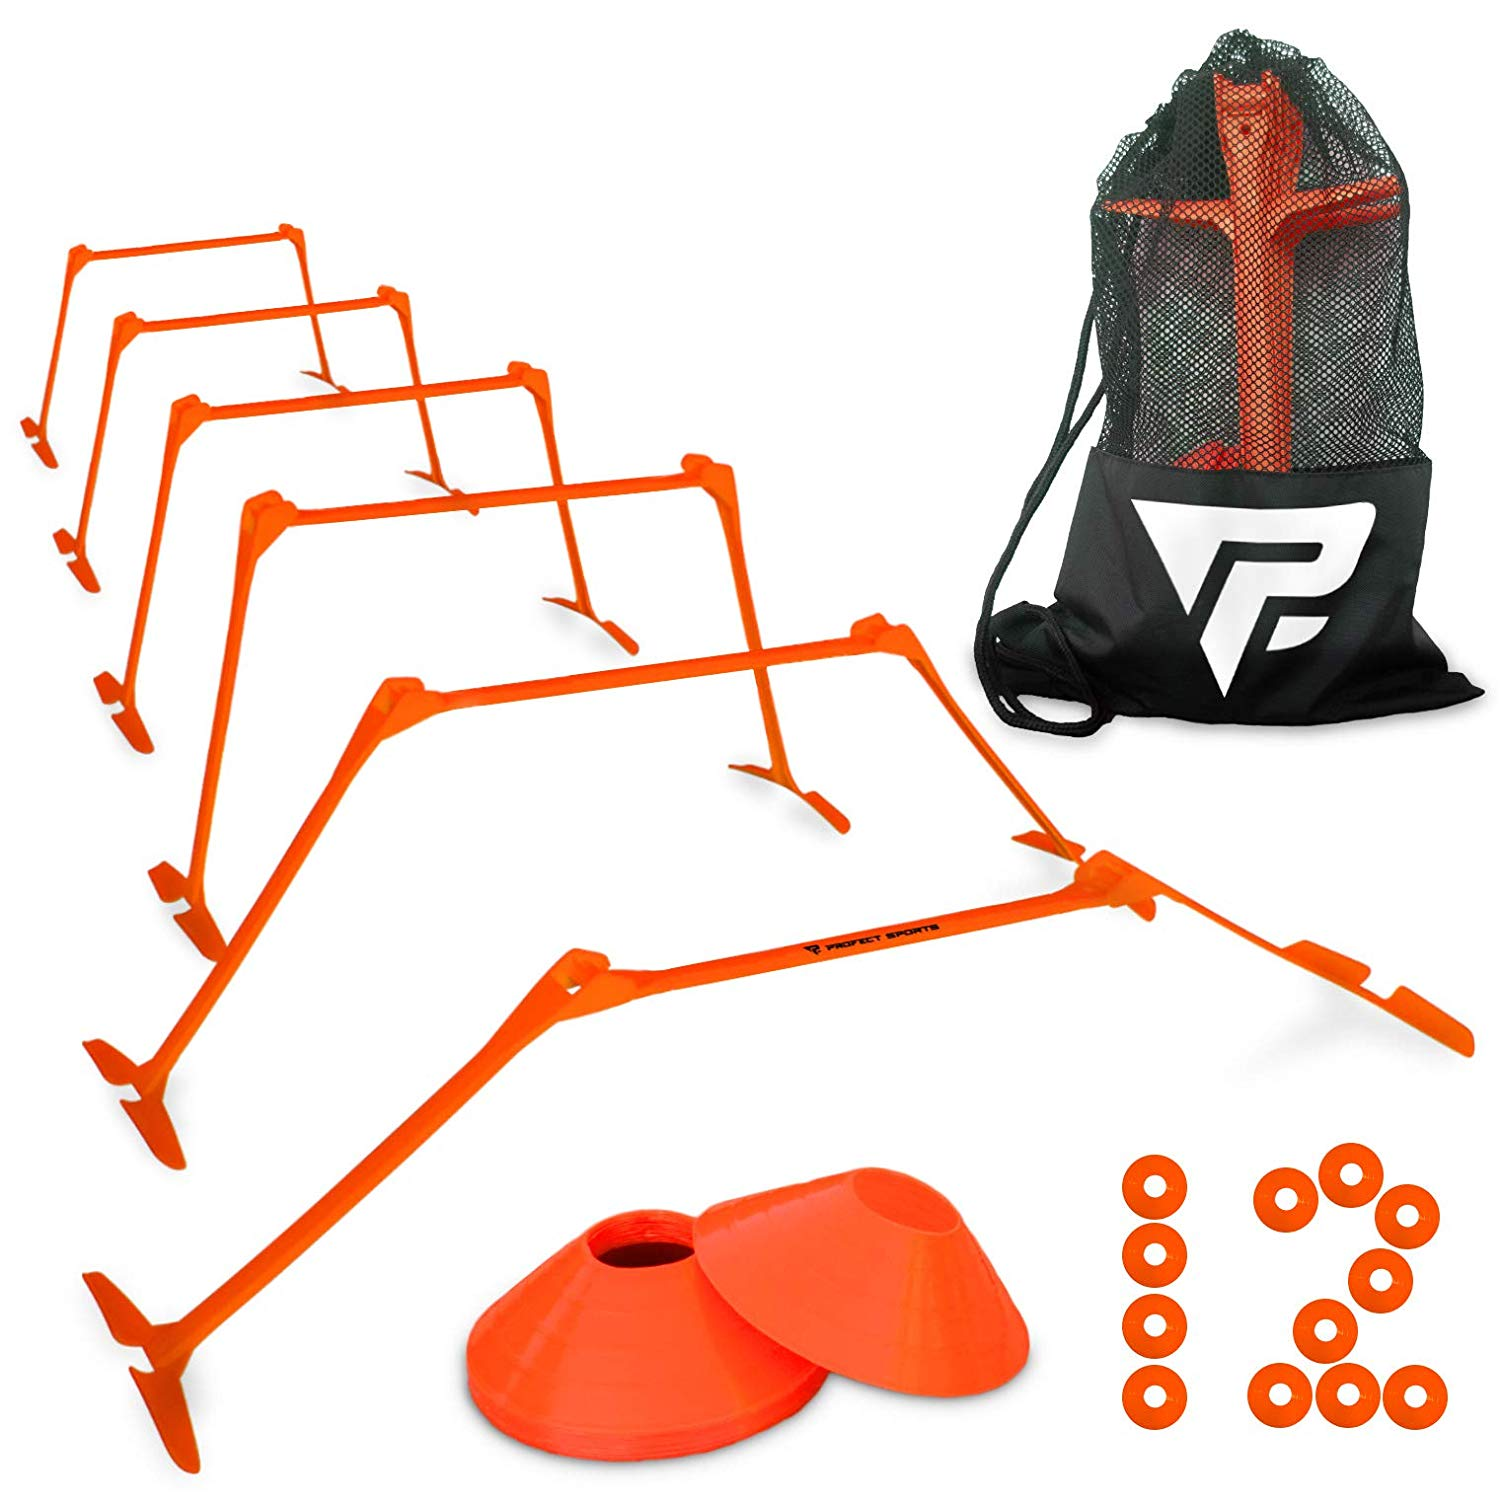 Cheap Cone Drills For Speed, find Cone Drills For Speed deals on